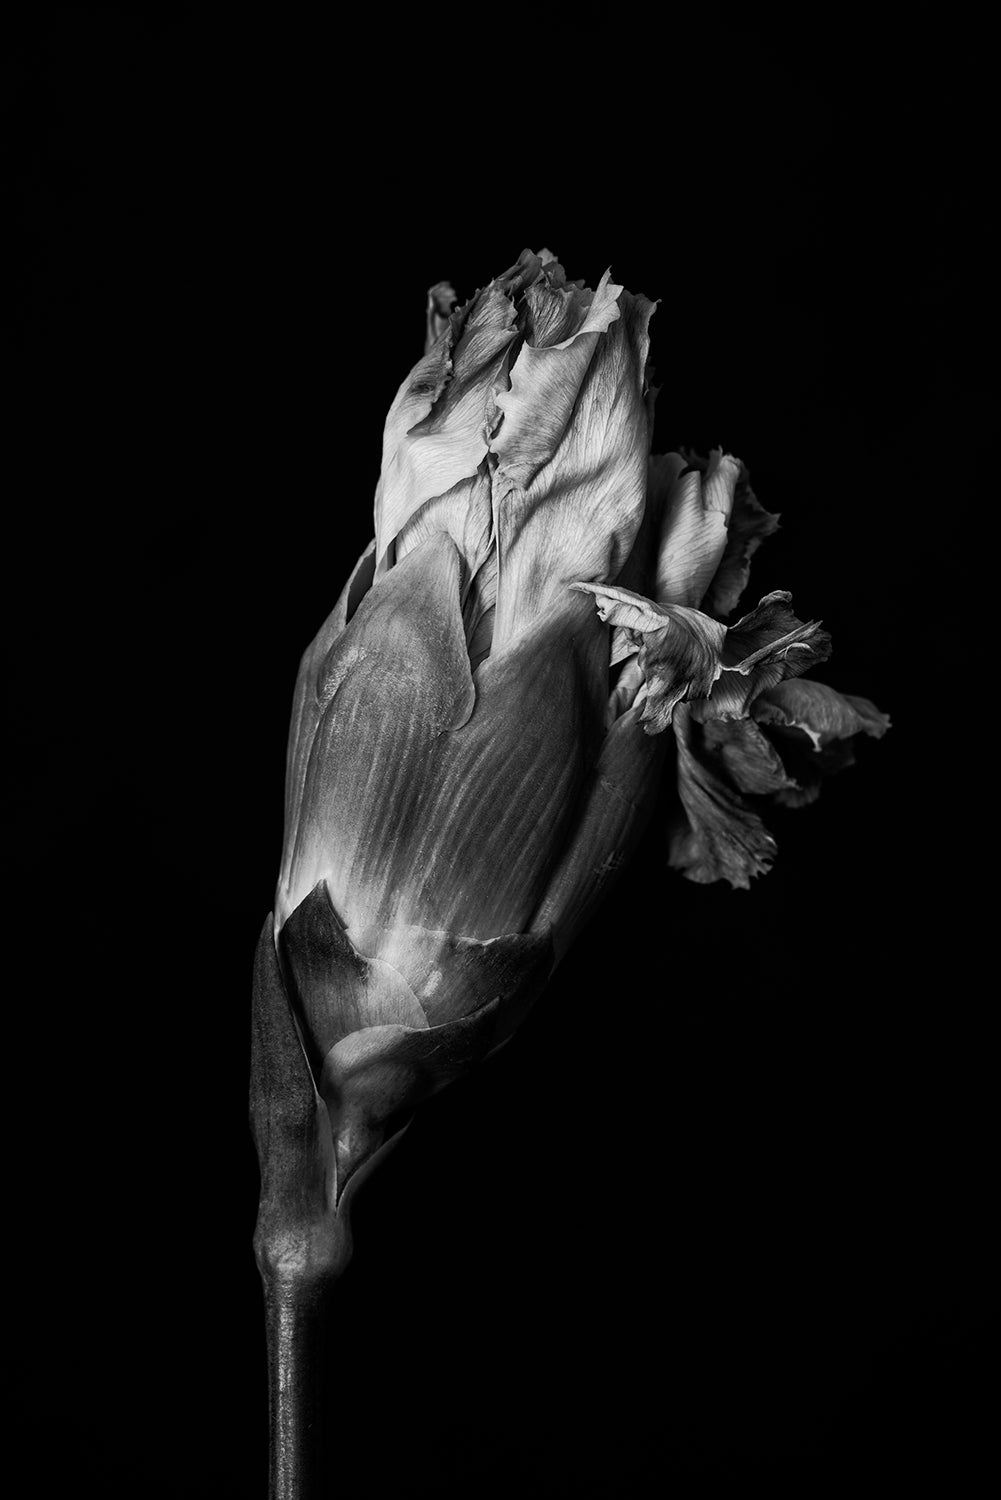 Flower Bloom Past Its Prime. Black and White Photograph by Keith Dotson. Buy a fine art print.